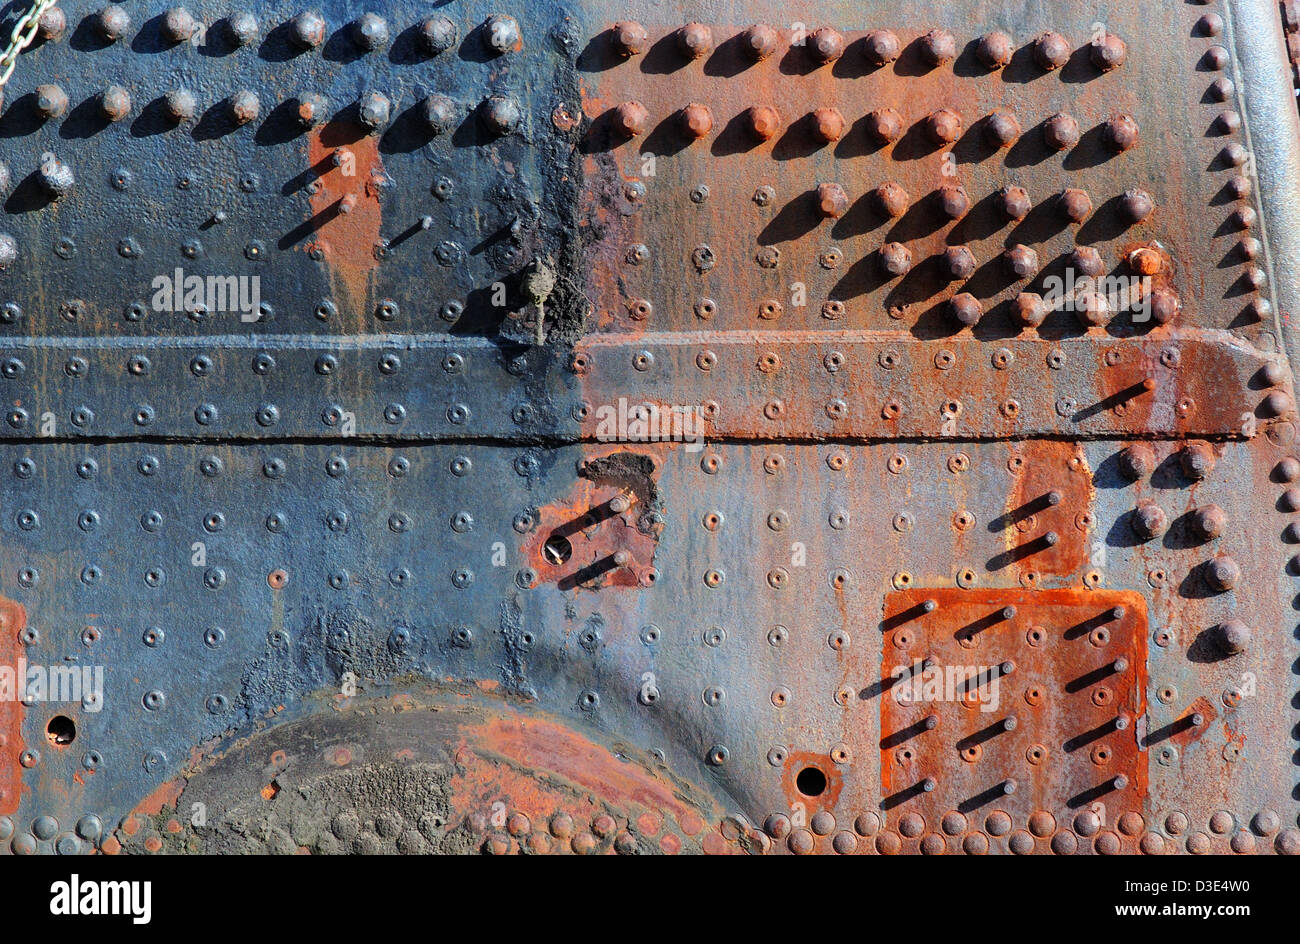 side of an antique railroad steam locomotive - Stock Image